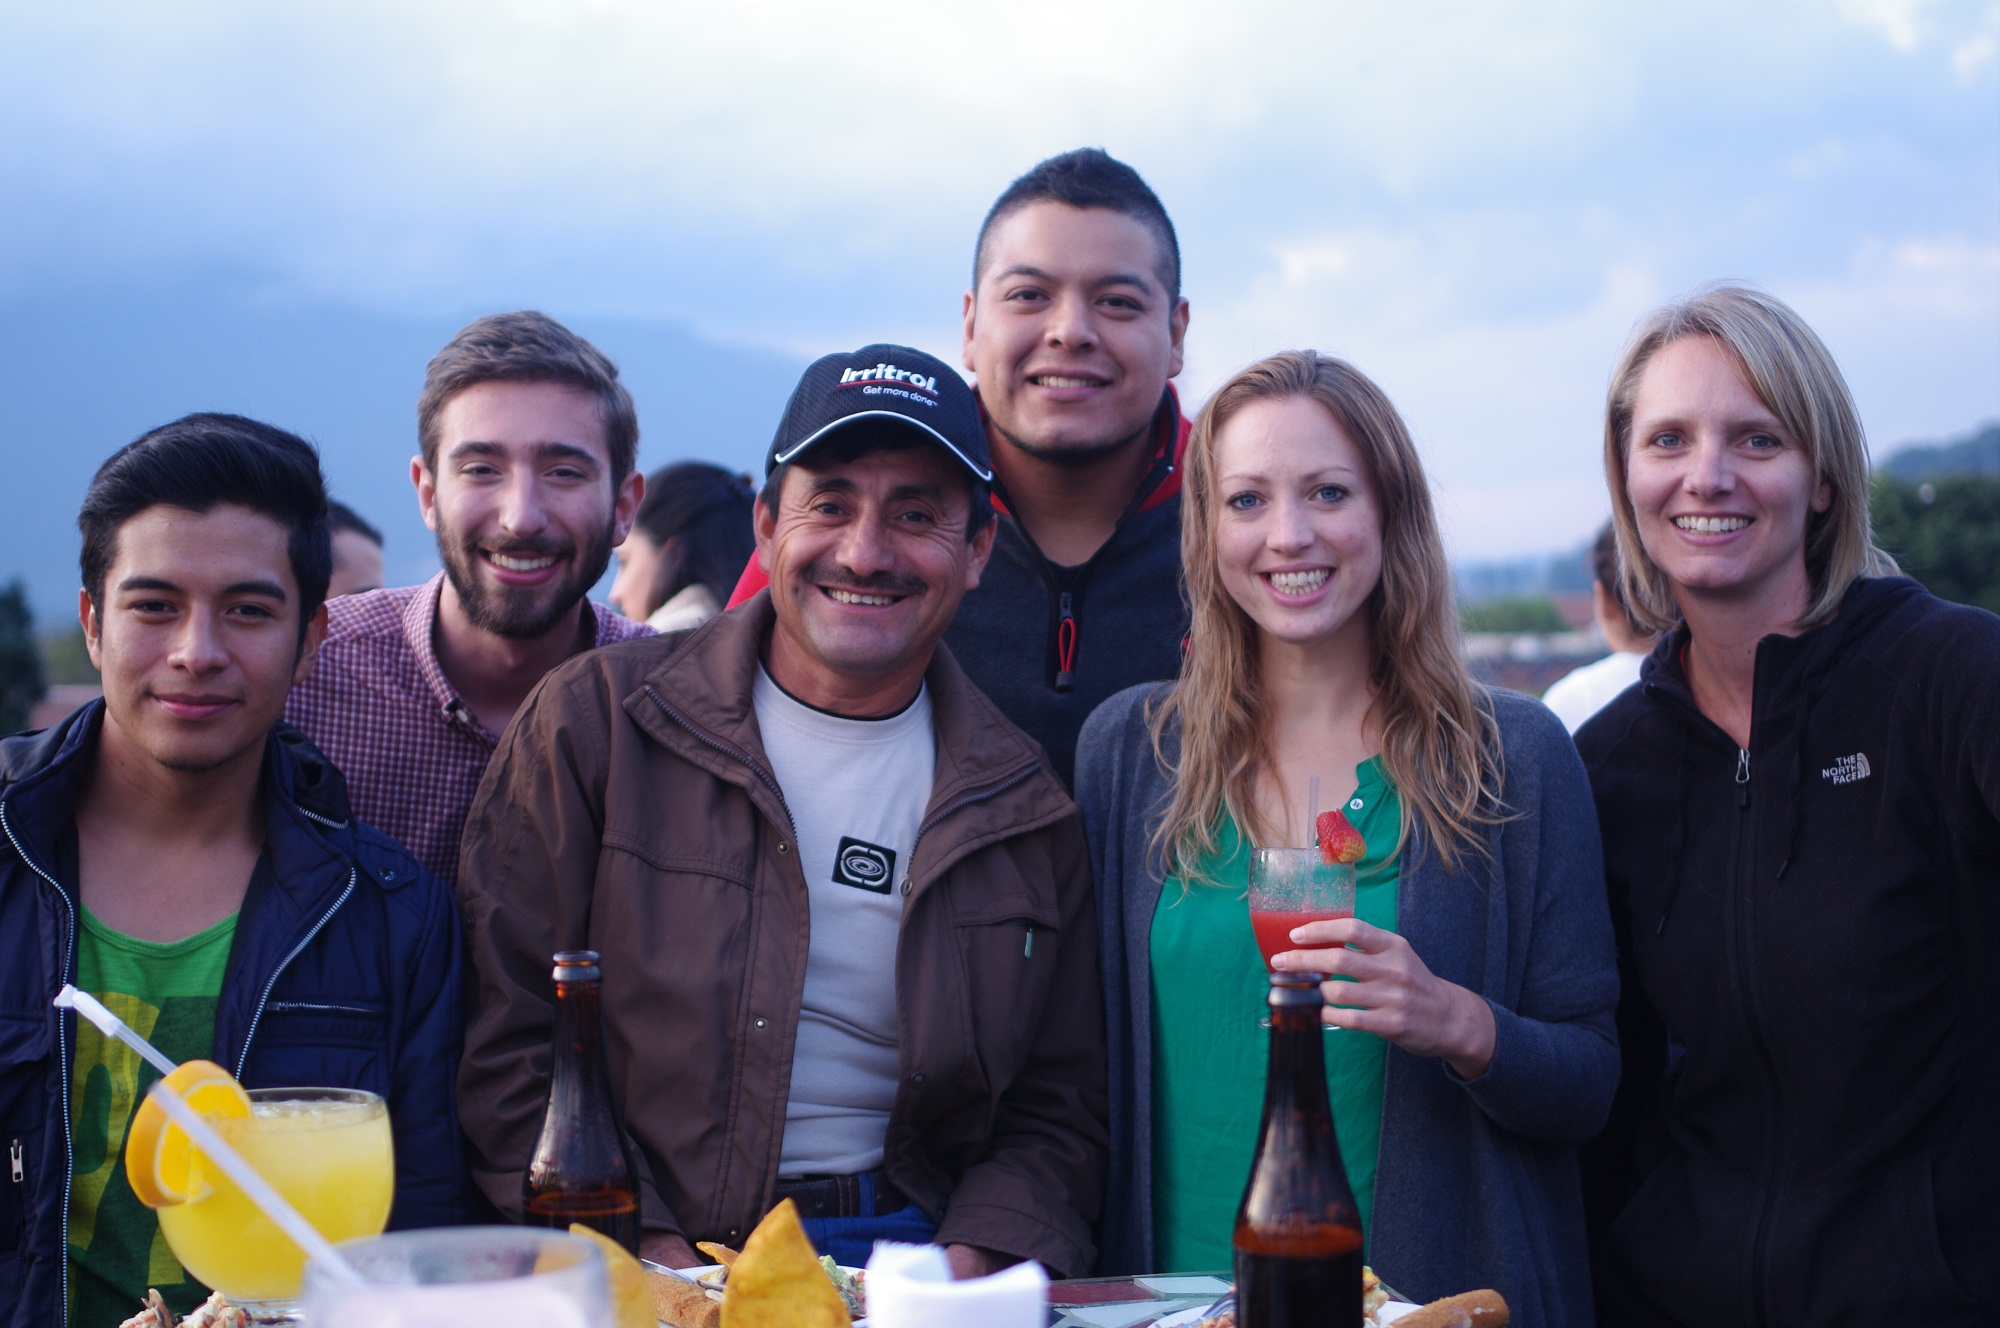 The DLG crew (without a few) celebrating a year of hard work at the convivio.